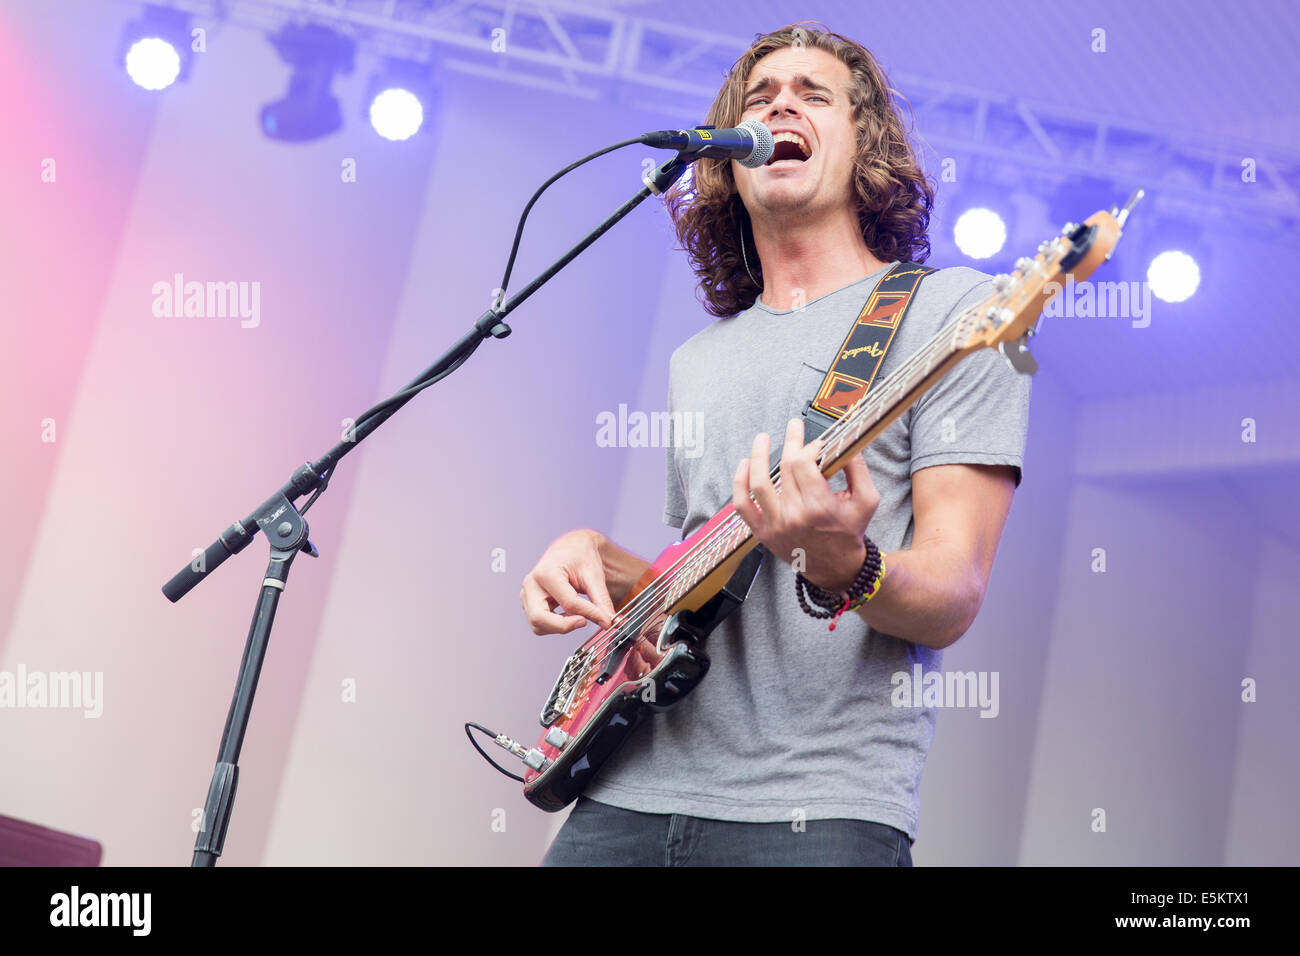 Chicago, Illinois, USA. 3rd Aug, 2014. Bassist DYLAN KONGOS of the band Kongos performs live at the 2014 Lollapalooza - Stock Image